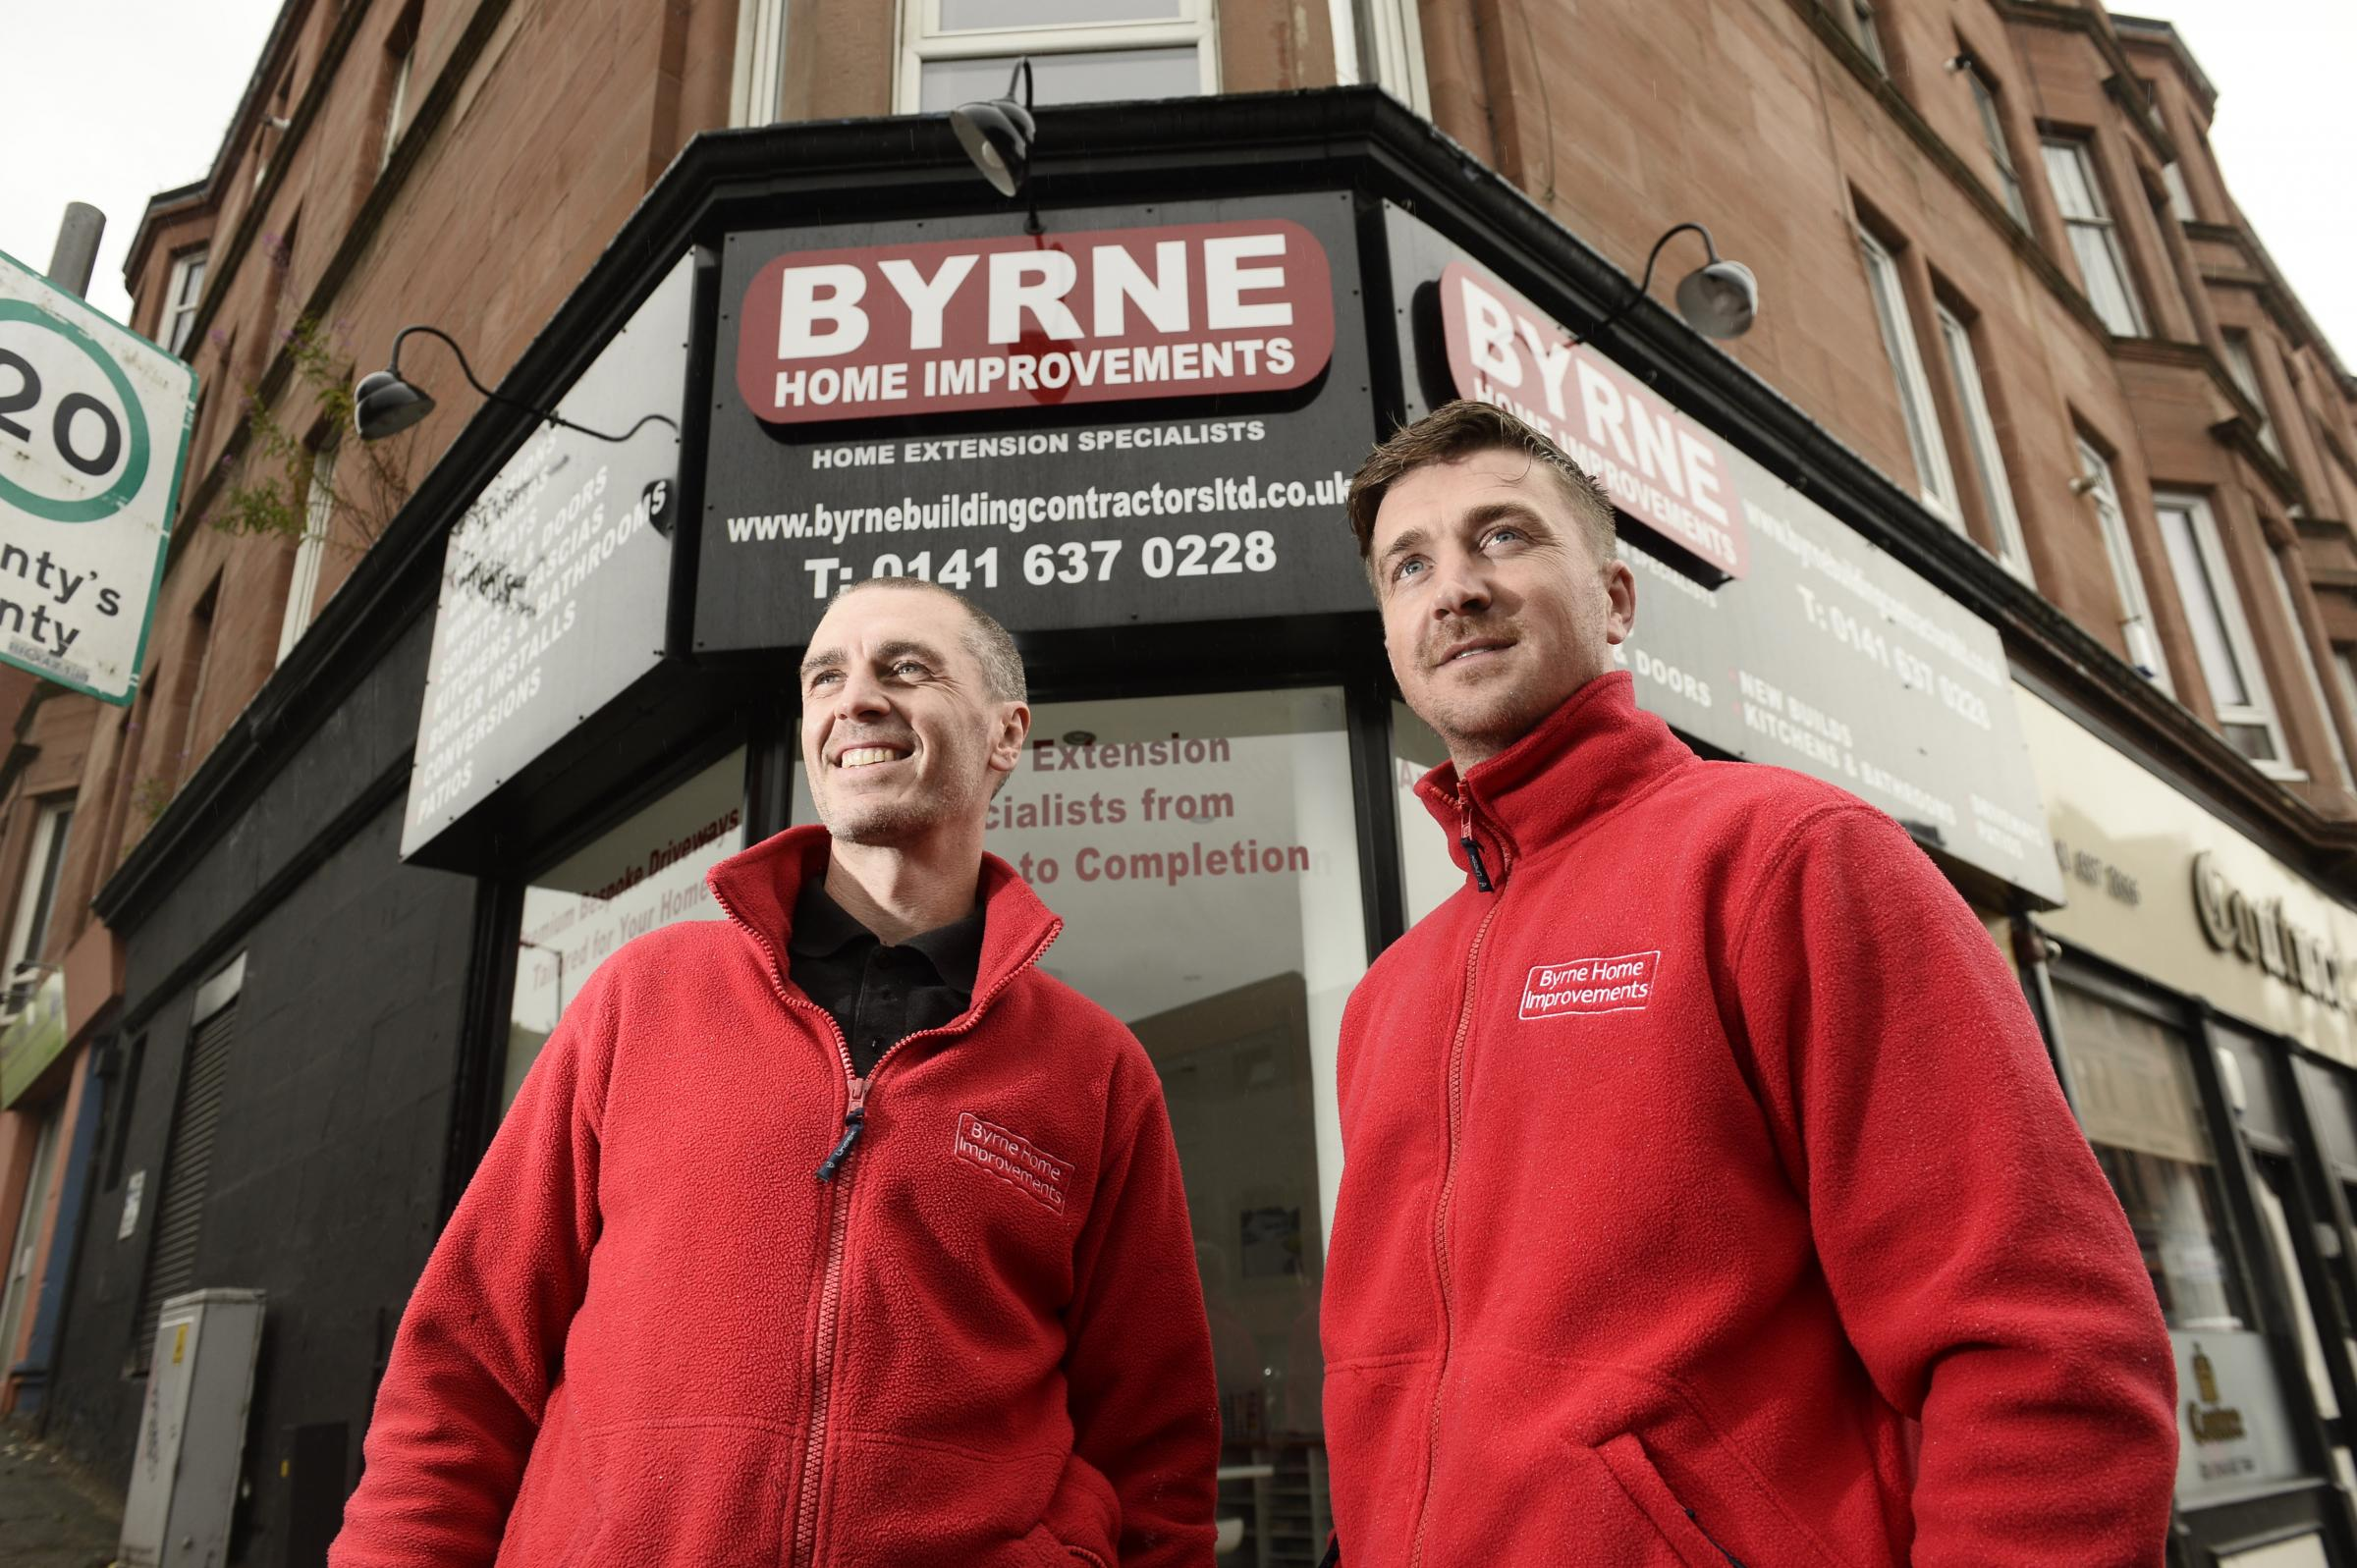 James Macklin (left) and Joseph Byrne (right) went into partnership fours years ago and are expanding their home improvement business